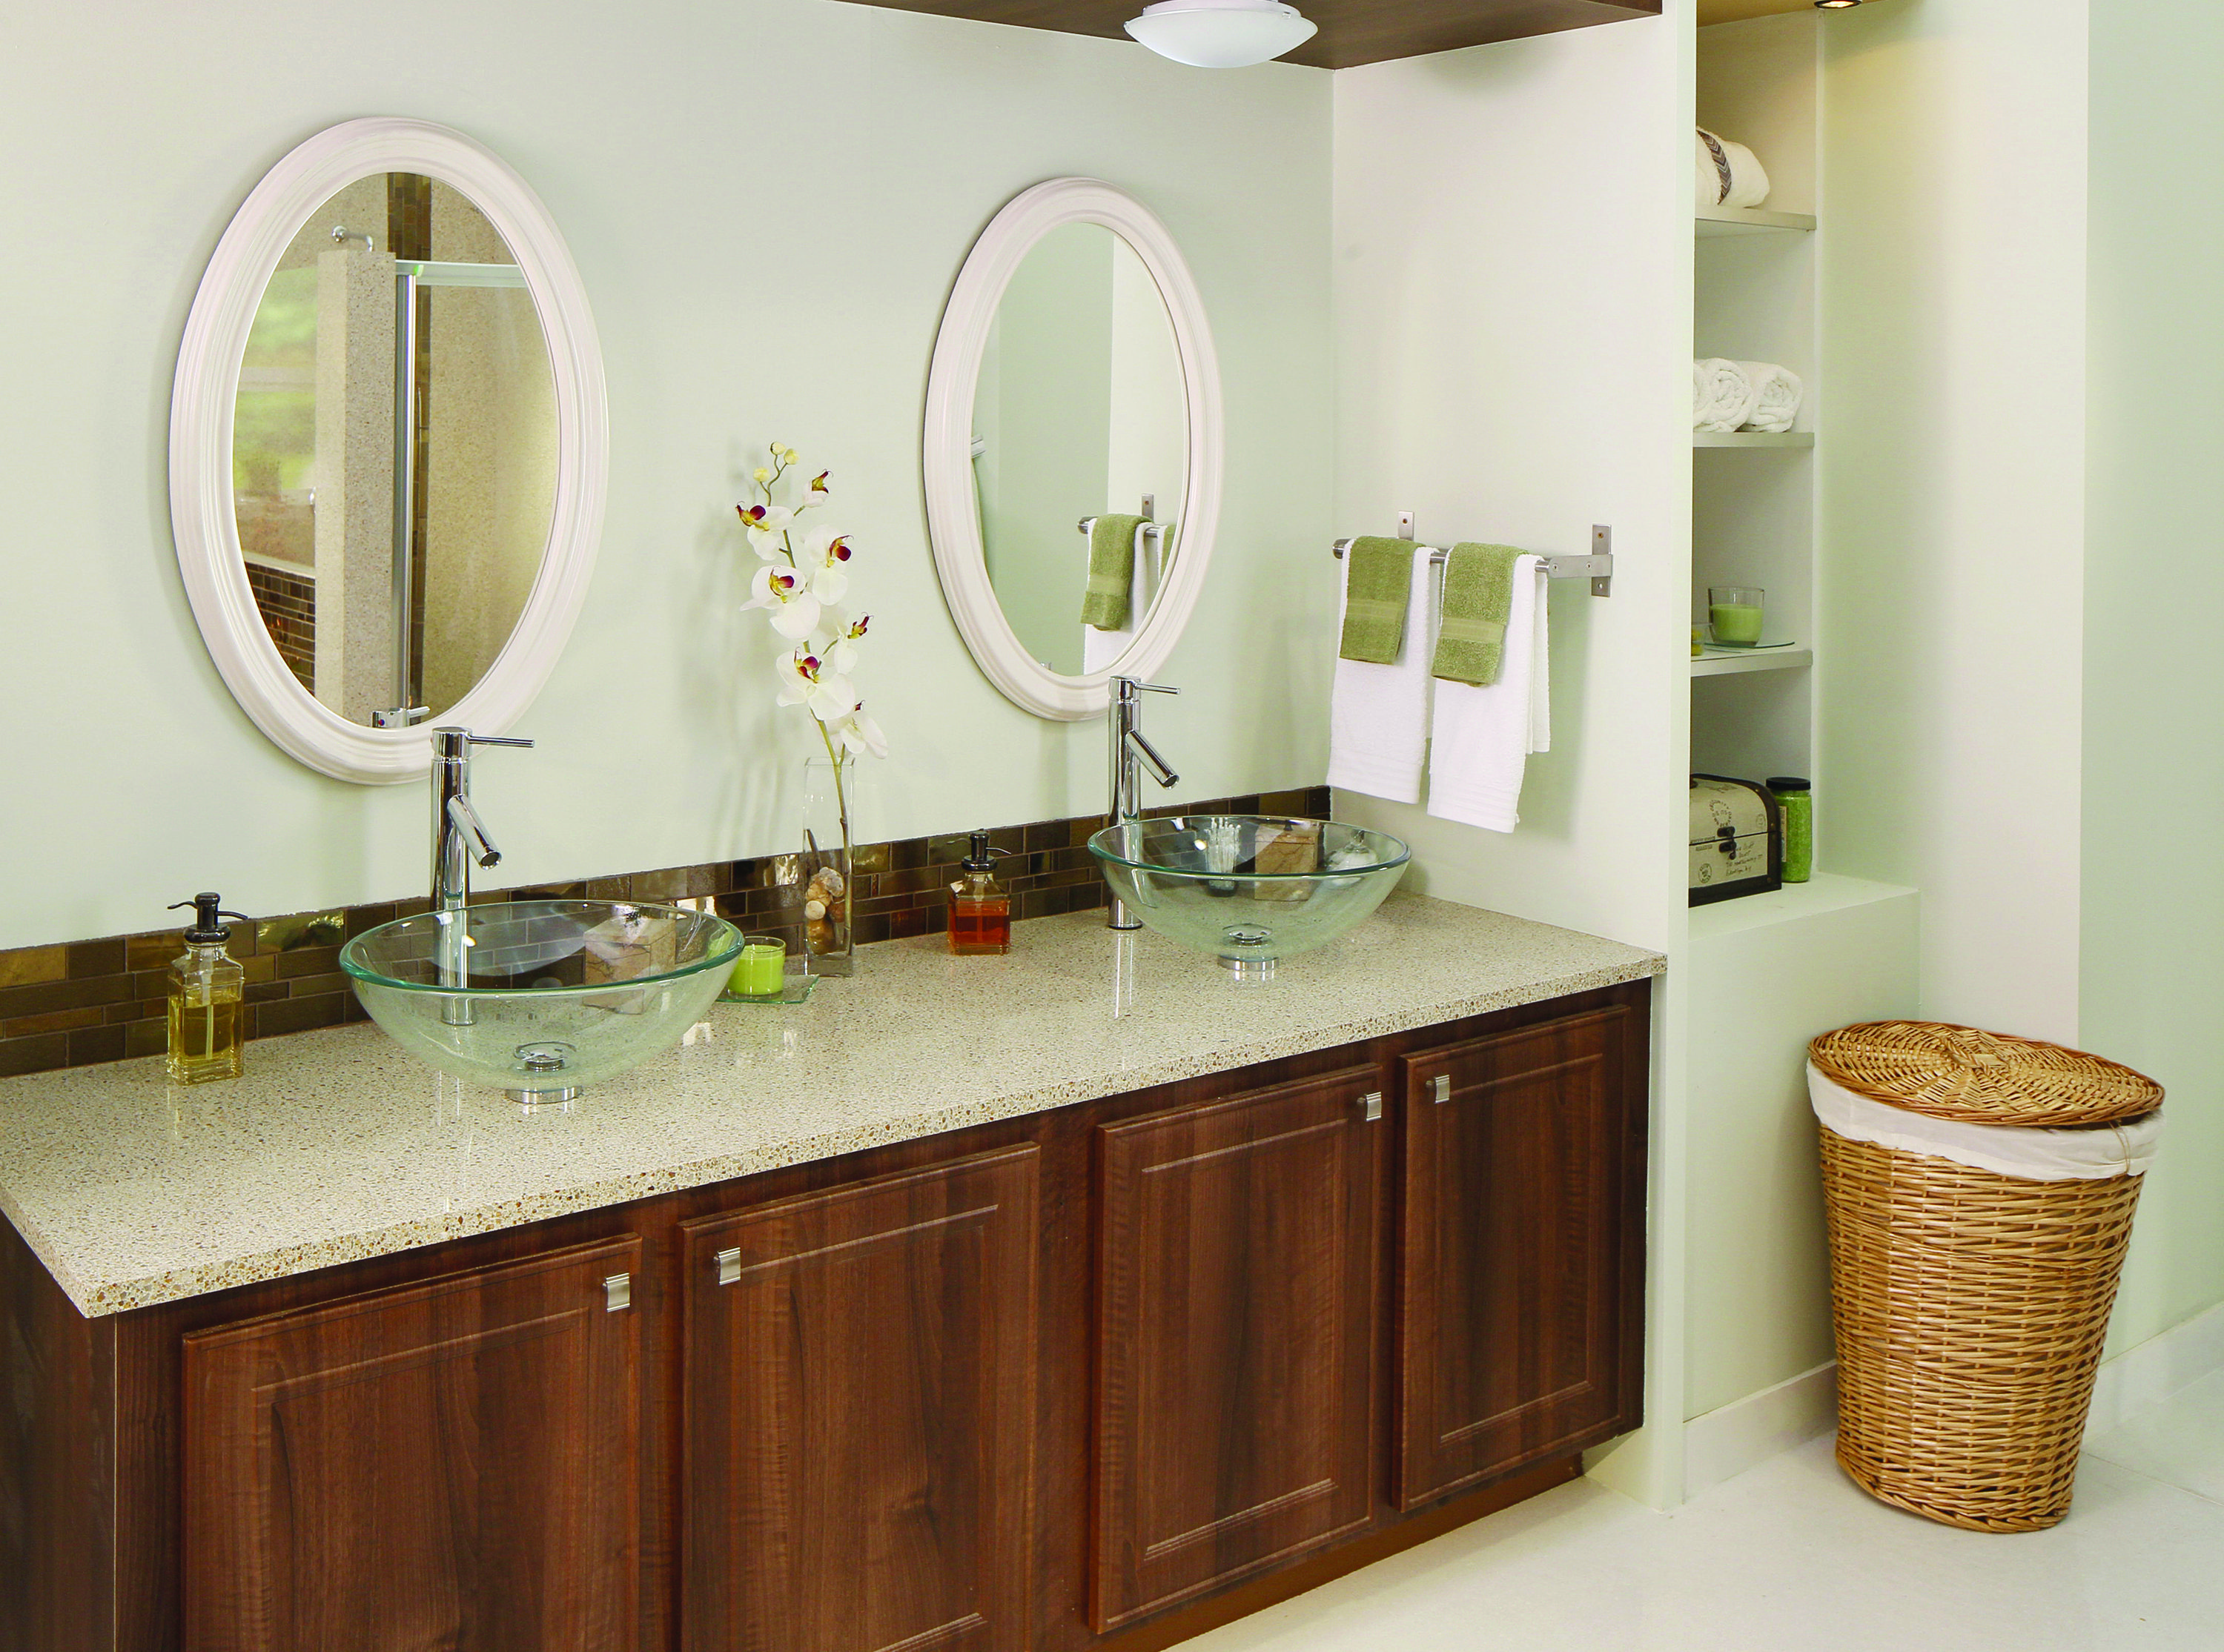 Types of countertops for bathrooms -  Bathroom By Granite Transformations